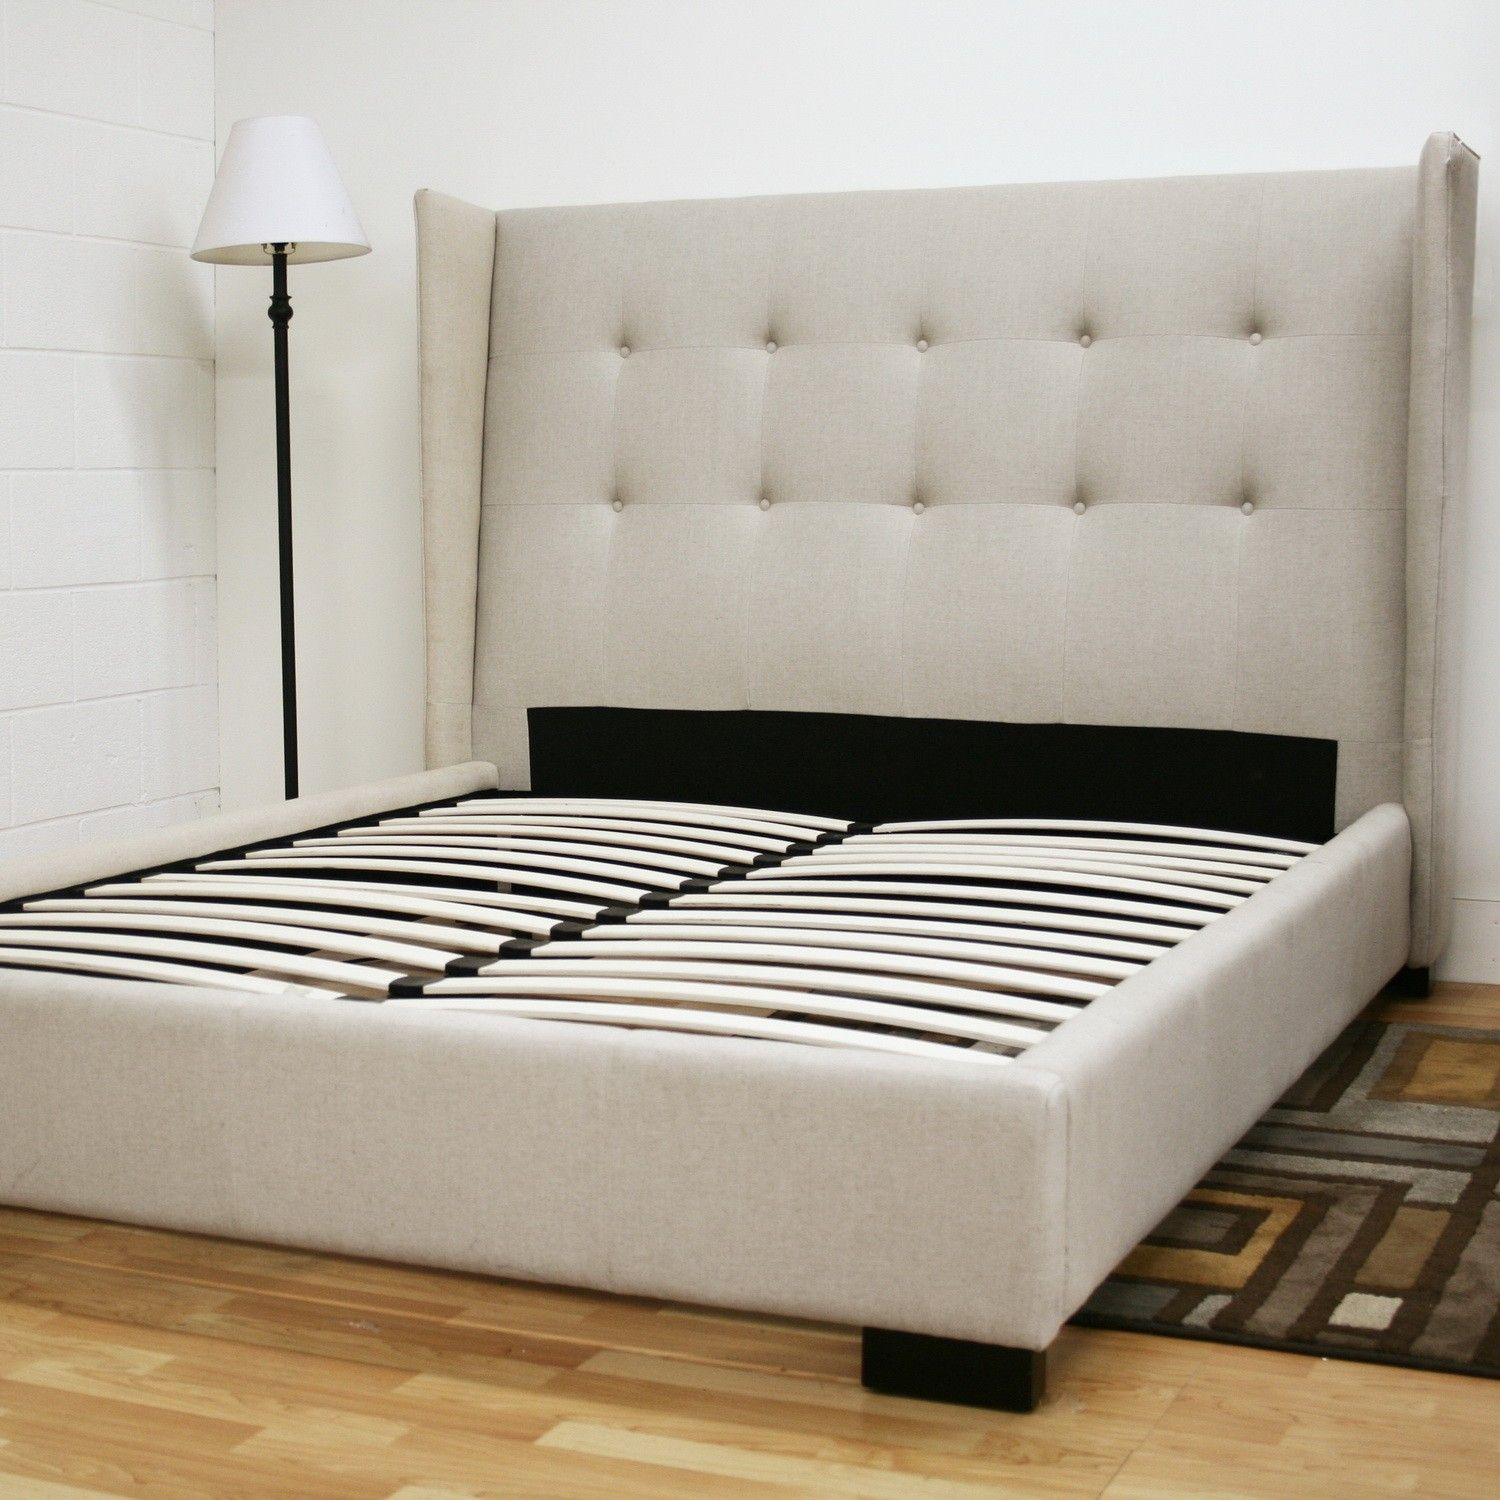 Tall White Upholstered Puffy Headboard Master Bed As Well As Queen Size Bed  Frame And Bed Frame For King Size Bed, Awesome King Size Platform Bed Frame  ...